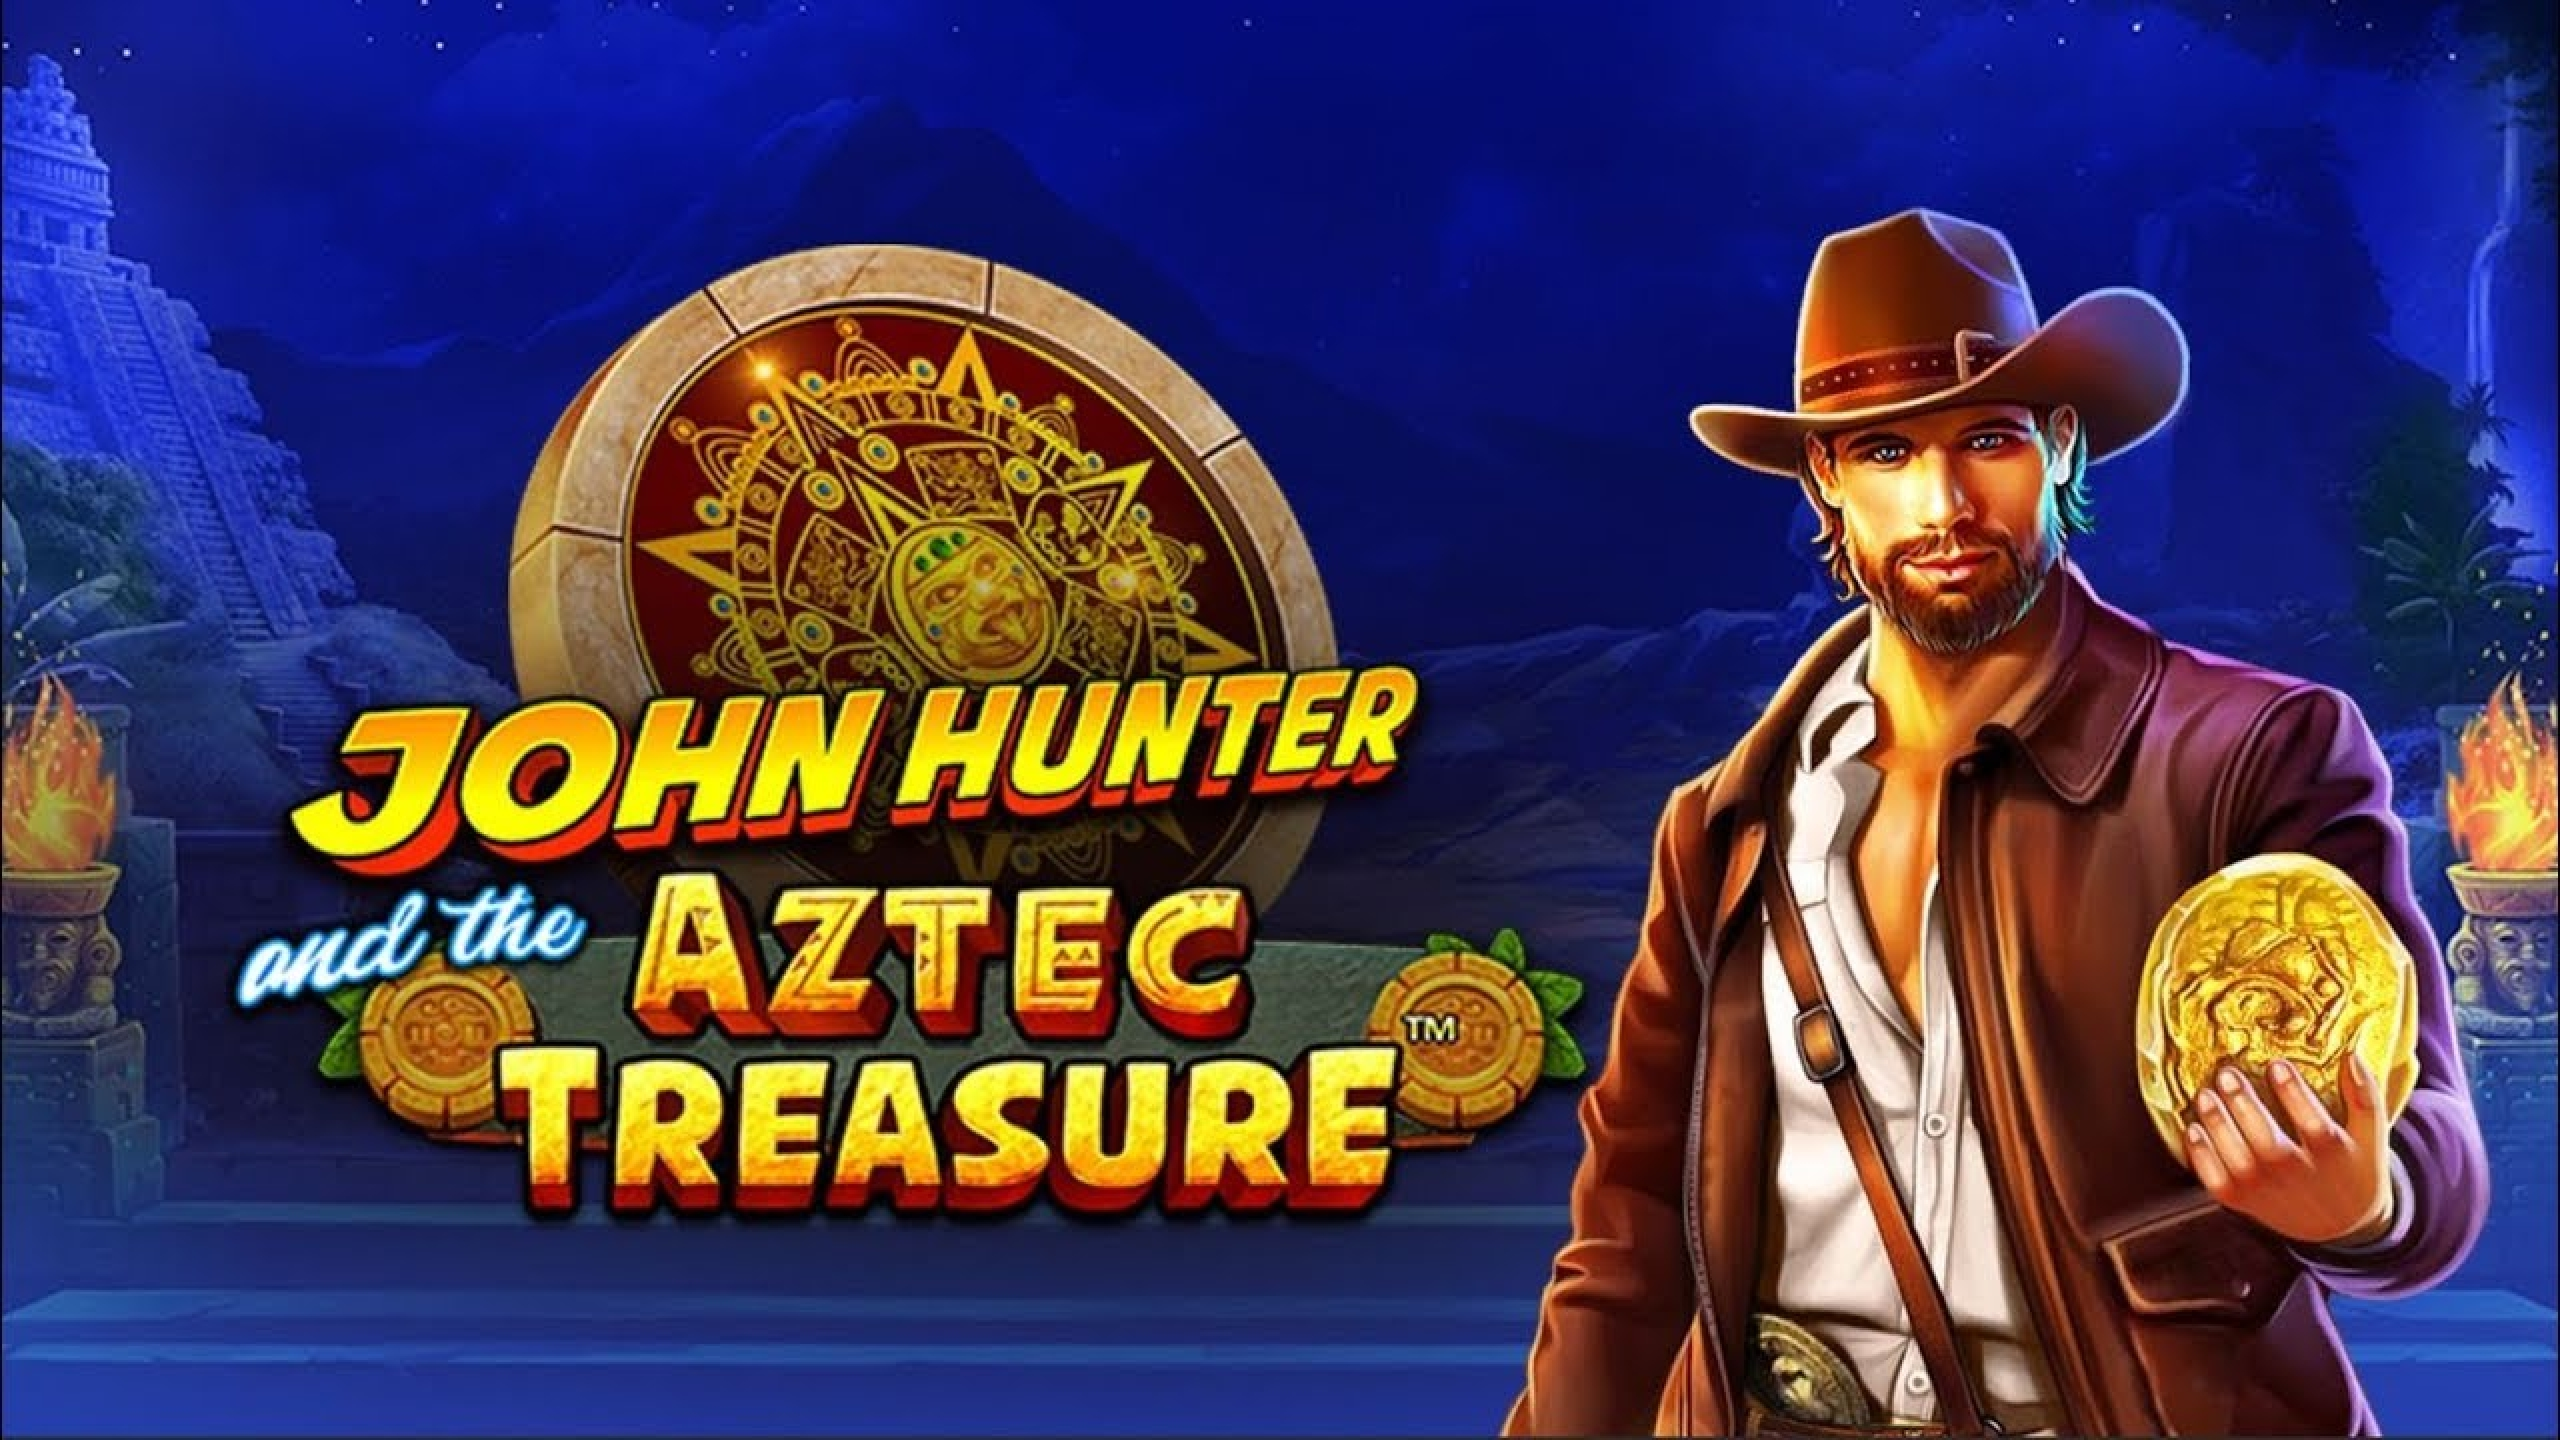 The John Hunter and the Aztec Treasure Online Slot Demo Game by Pragmatic Play